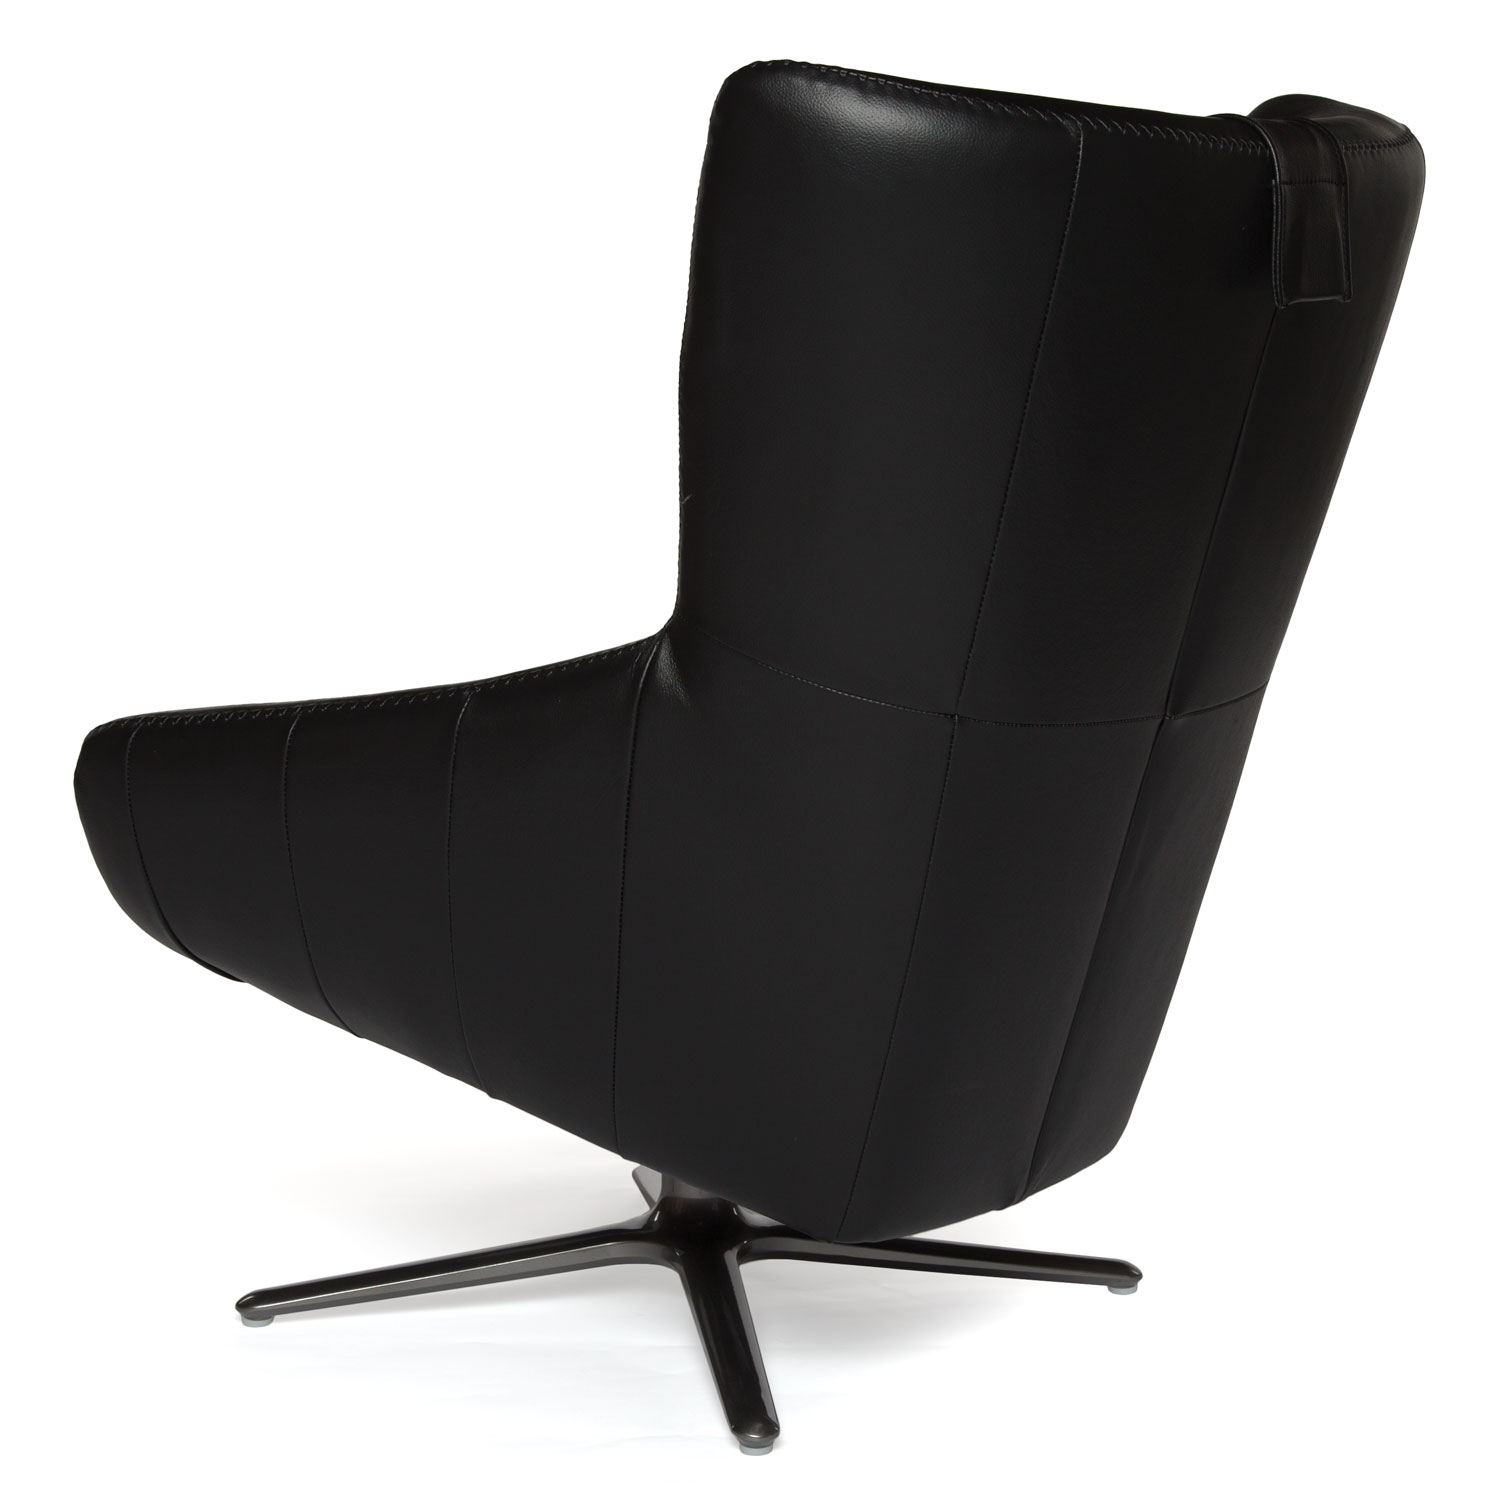 Black Leather Swivel Chair Regarding Leather Black Swivel Chairs (View 1 of 25)